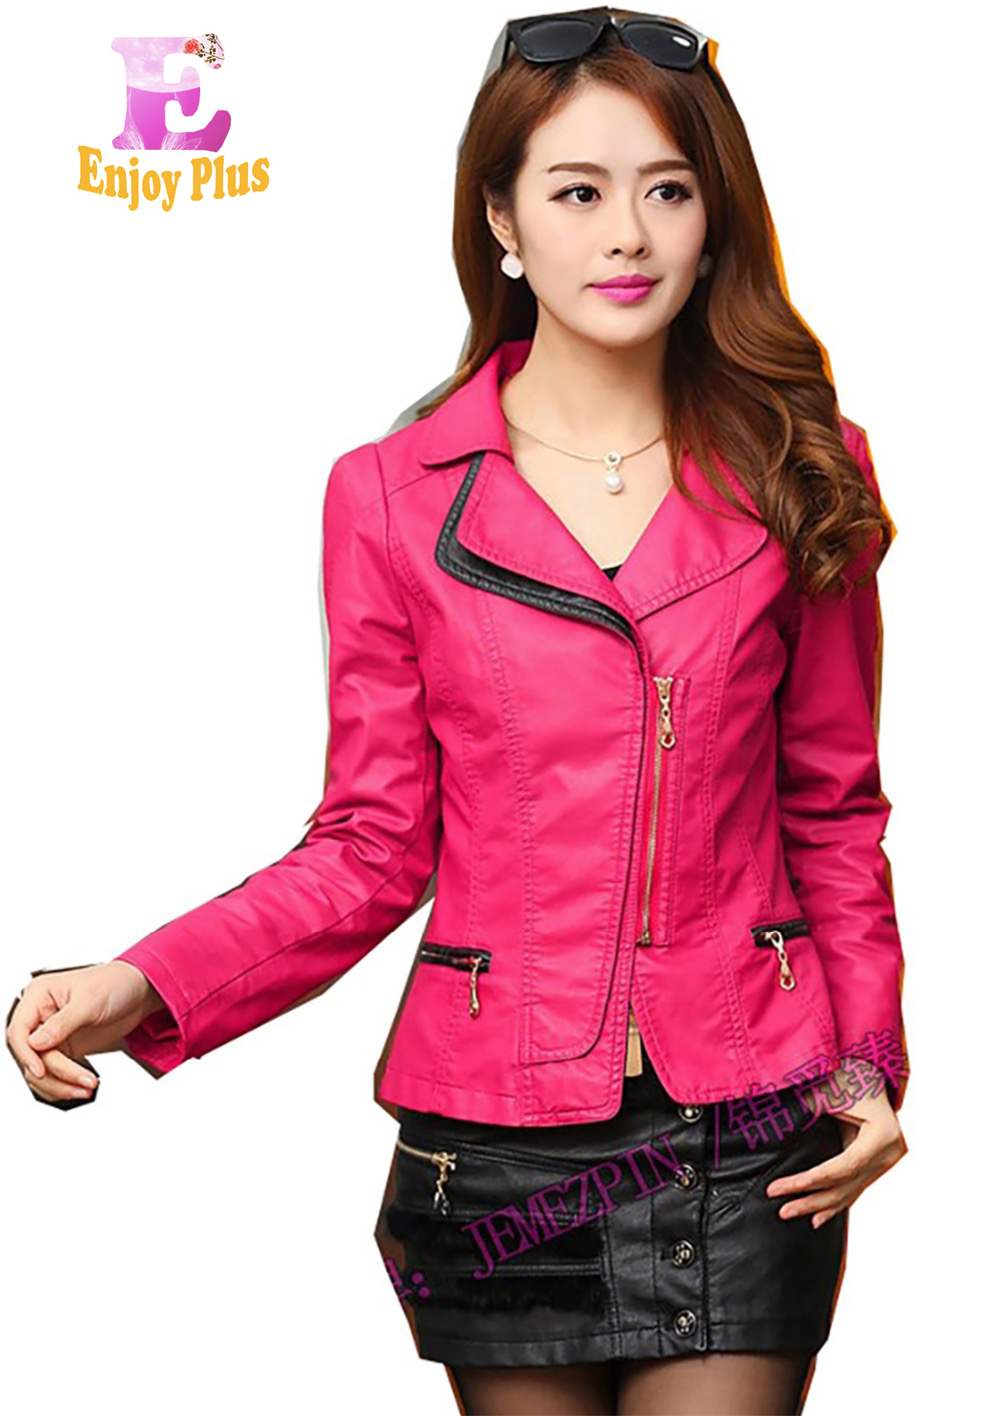 S M L XL XXL 3XL 4XL chest 84-108cm PU leather vintage new autumn 2018 faux short jacket women large size motorcycle slim lady